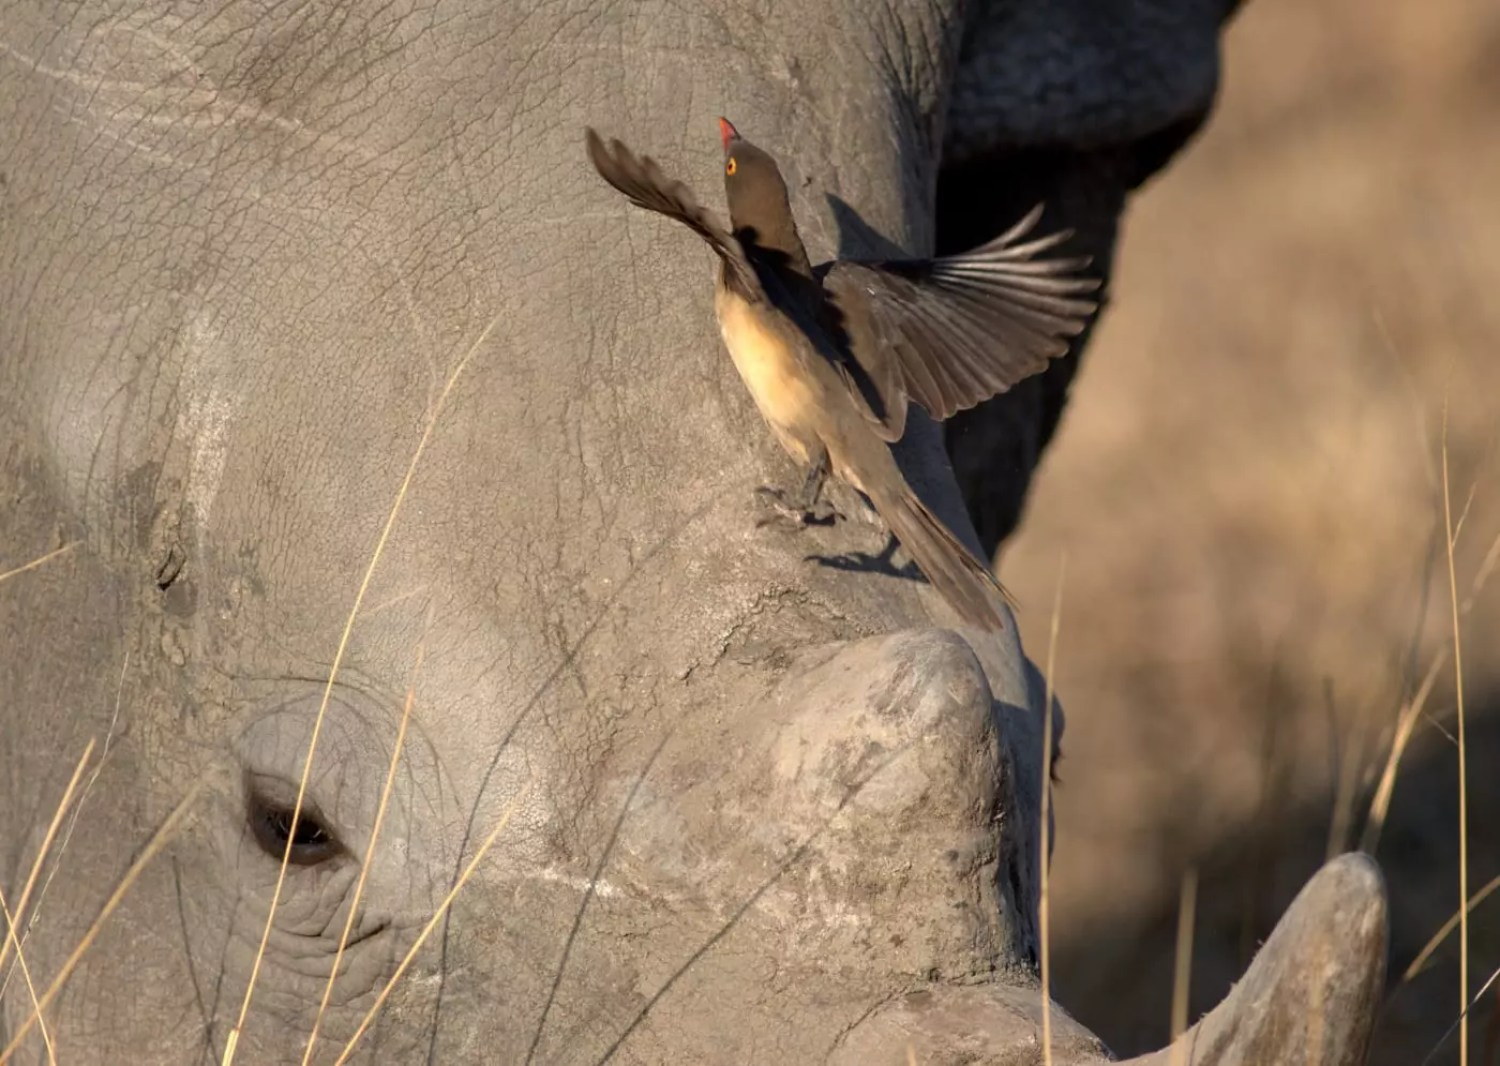 oxpecker on rhino